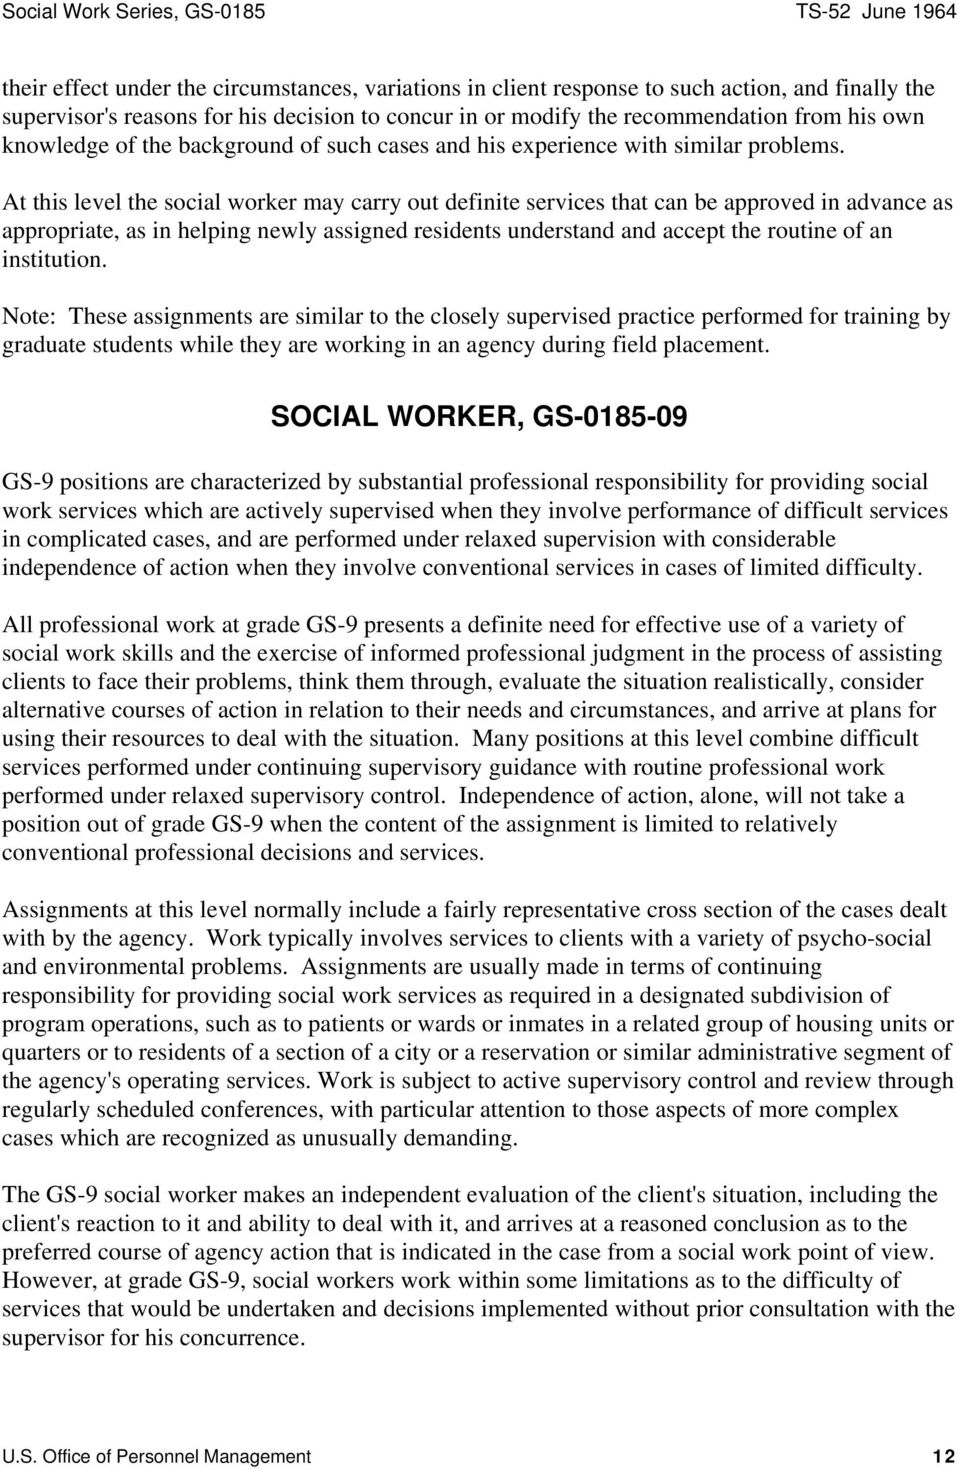 At this level the social worker may carry out definite services that can be approved in advance as appropriate, as in helping newly assigned residents understand and accept the routine of an